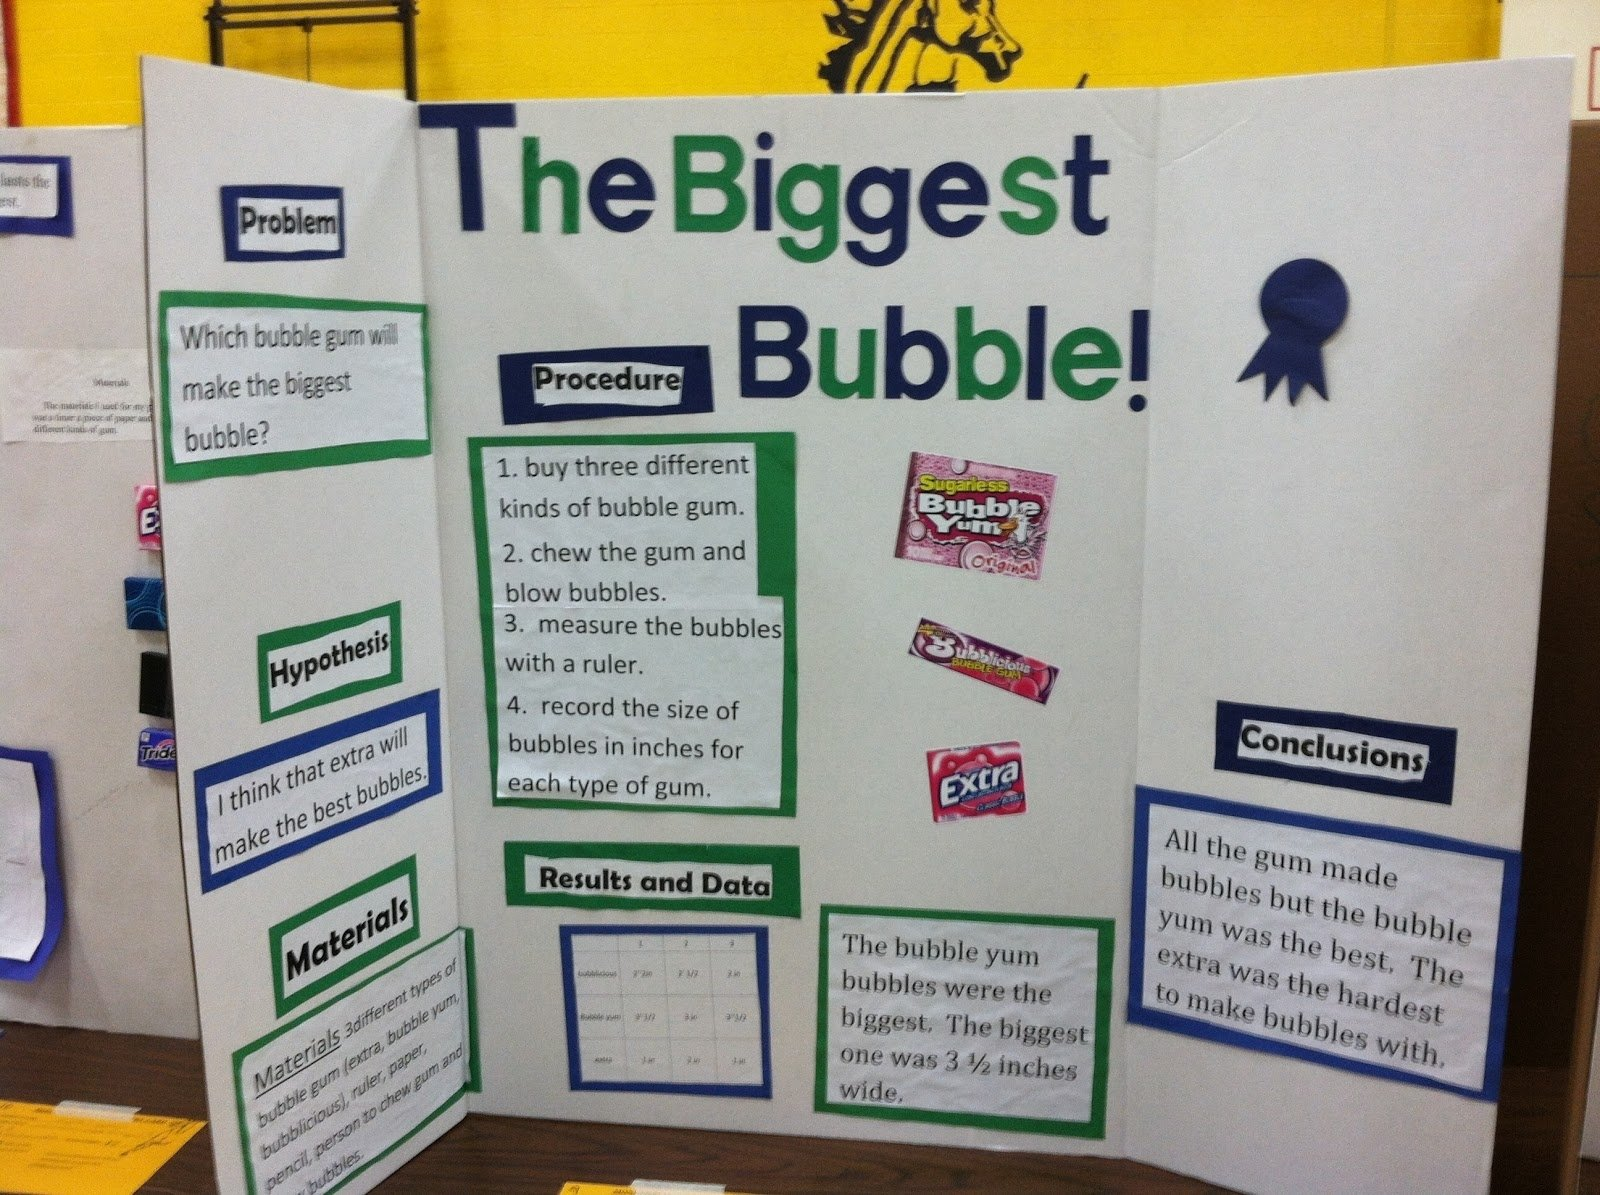 Th Grade Science Project Layout on 4th grade science projects electricity, 4th grade science weather, 4th grade science boards, 4th grade science projects examples, reading fair project layout, 4th grade science experiments plants, 4th grade science fair projects with eggs, 4th grade science fair projects for students, 4th grade science workbook,